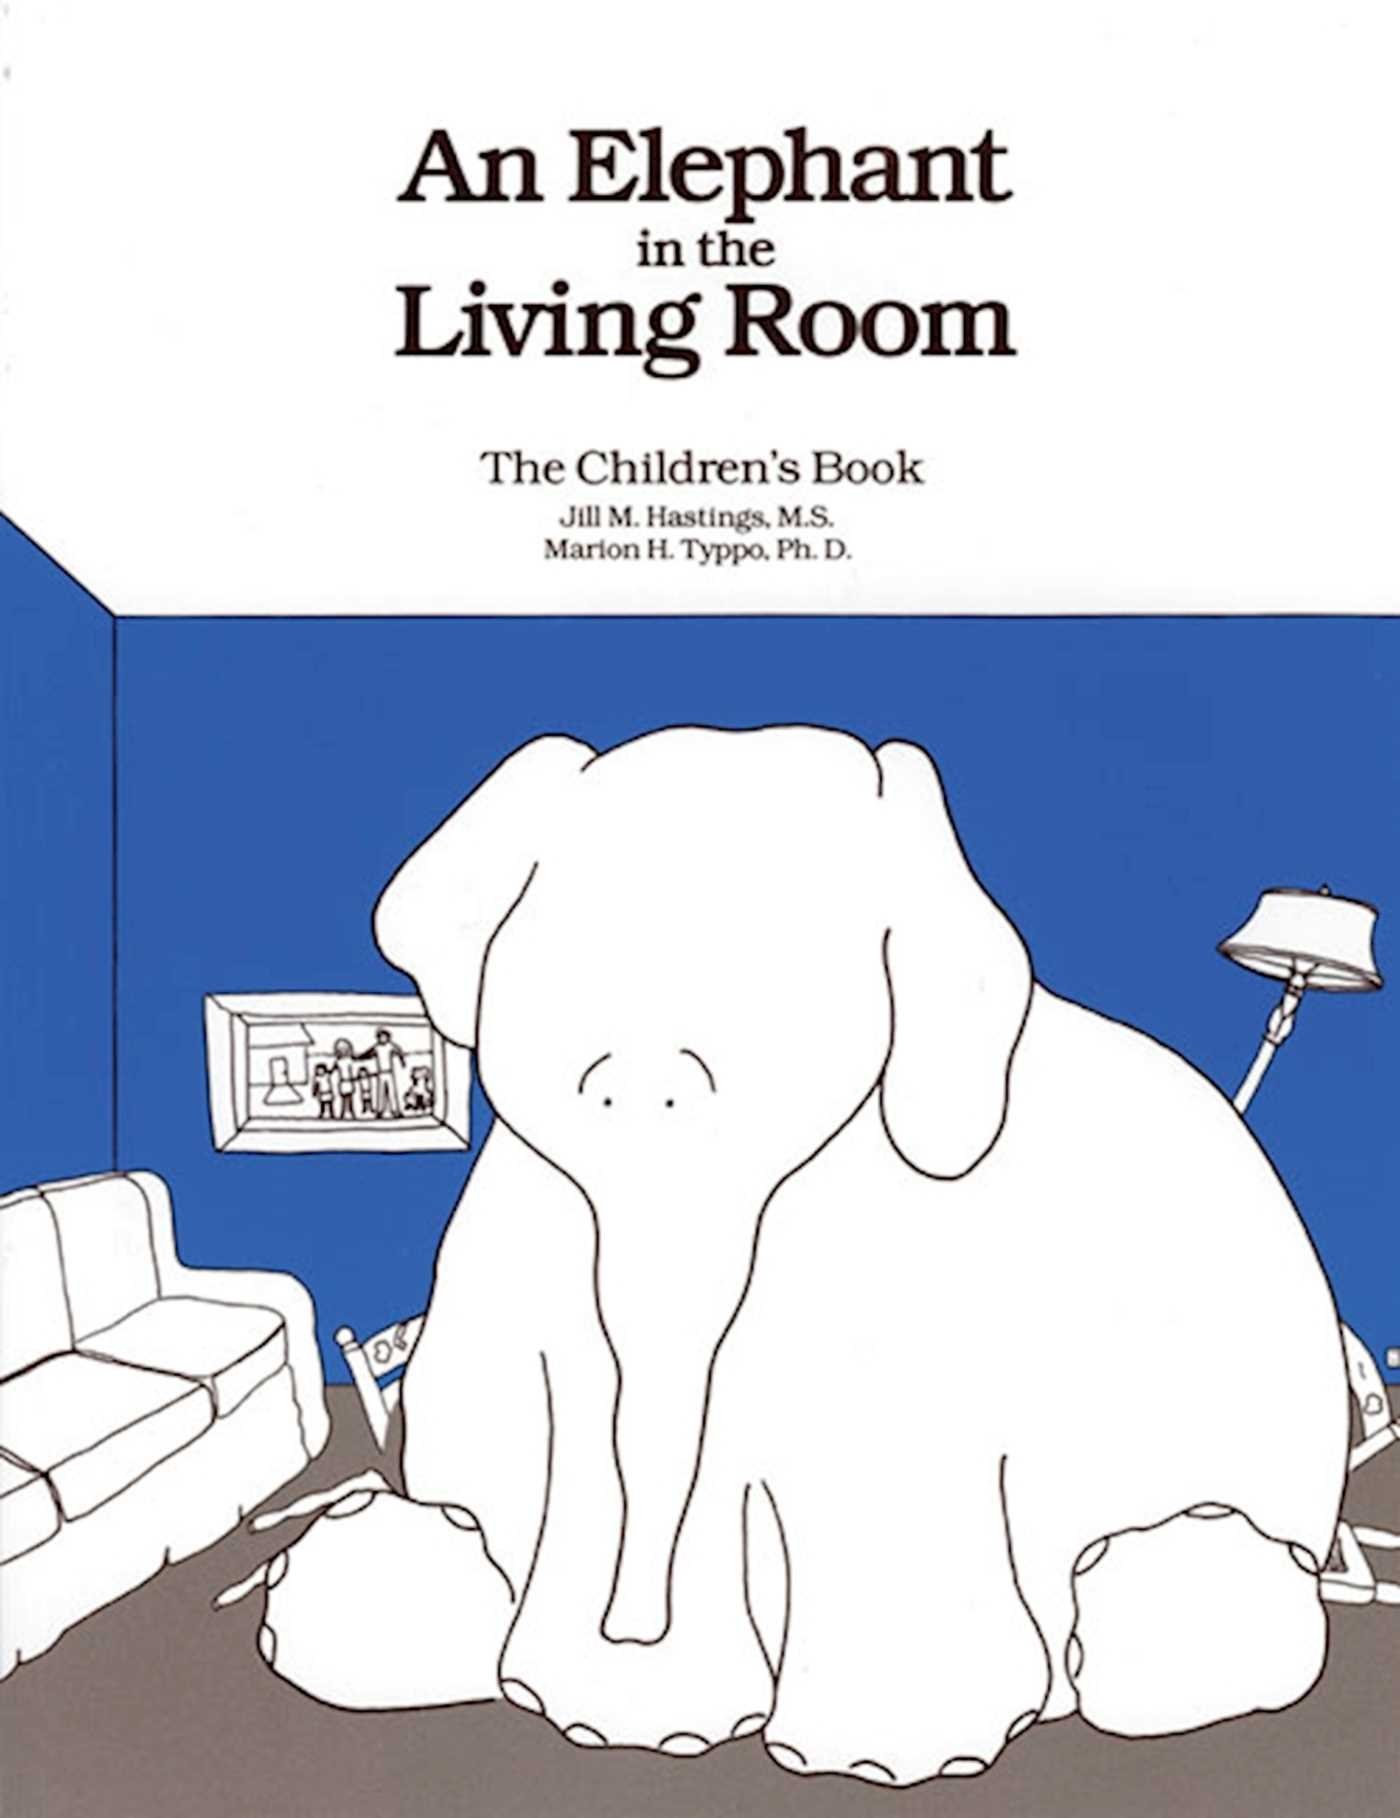 An Elephant In the Living Room The Children\'s Book: Jill M. Hastings ...